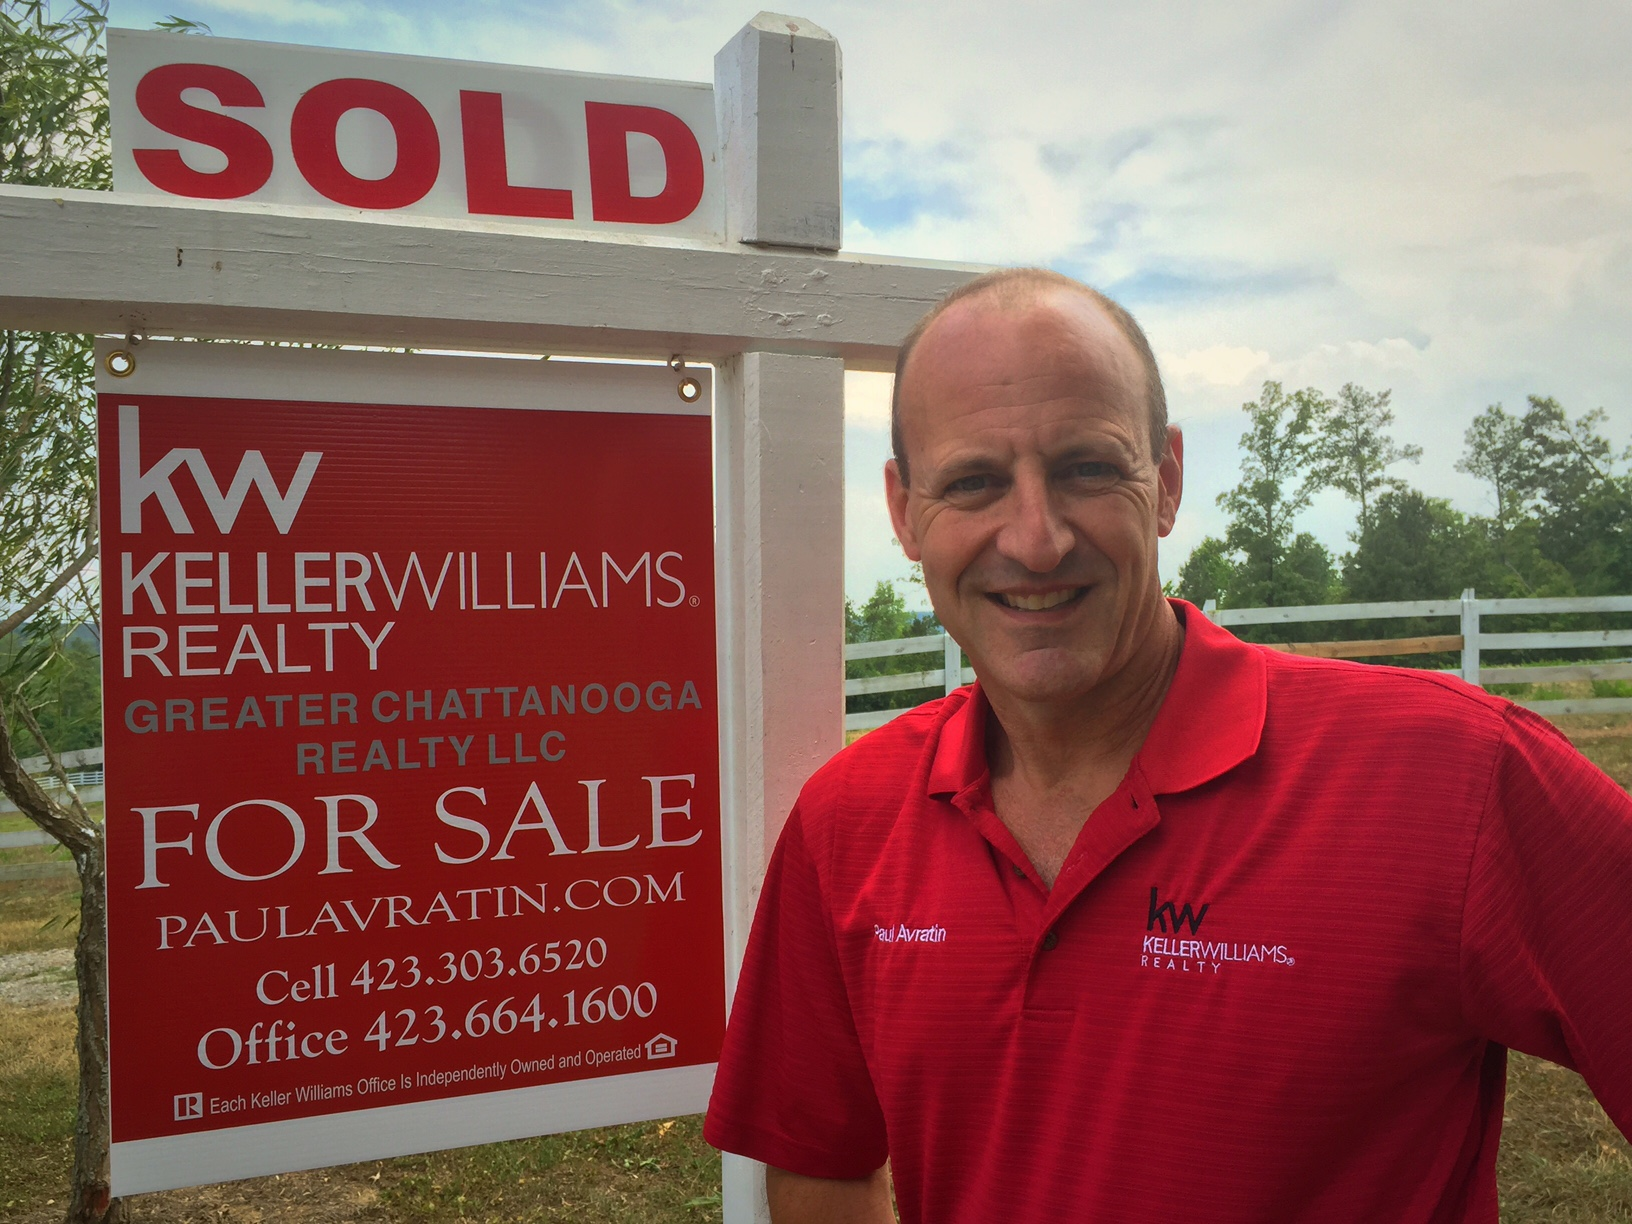 Paul Avratin Agent Keller Williams Realty image 0